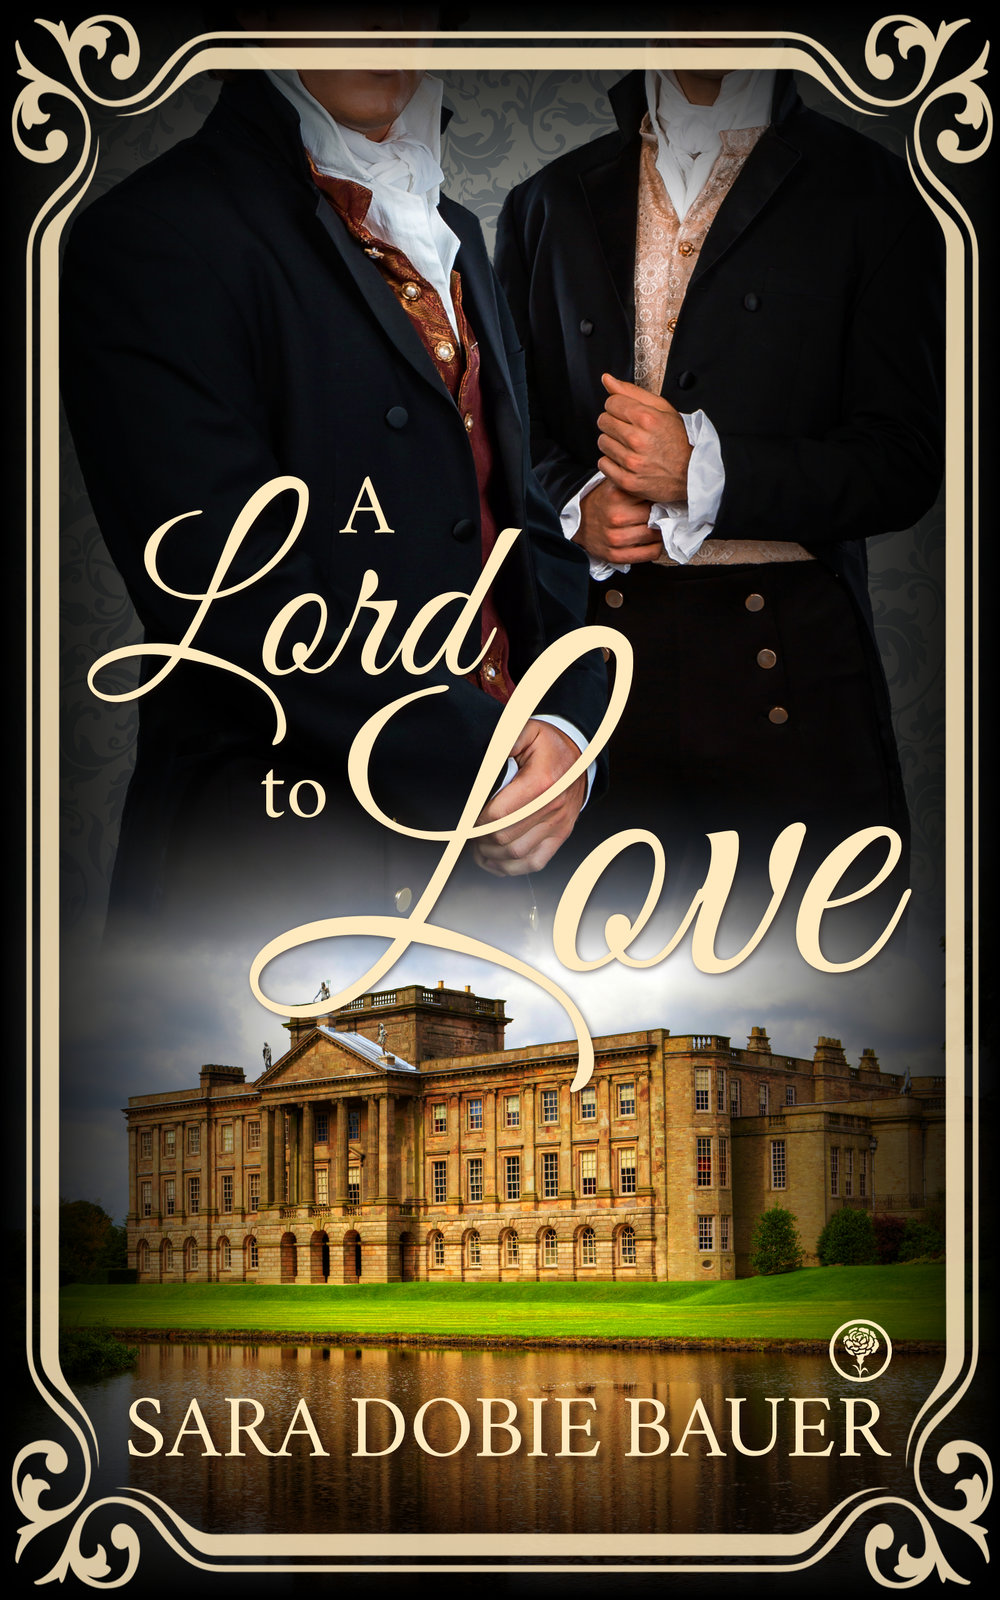 Lord John Morgan has long admired Lord Harrison Price, the youngest son of his rival… - During negotiations for a truce between the feuding Price and Morgan families, Lord John Morgan makes a shocking offer: he will give the Price family their land, in exchange for Harrison Price's hand in marriage.John has long been enamored with Harrison, the beautiful son of his late rival. Harrison is nineteen, inexperienced, and known for being cold and bitingly brilliant. The union seems impossible, and is met with disapproval from all sides, but John is determined to win the affections of the young man he has admired from afar.Will the frigid Harrison accept the other Lord's proposal, or will the object of John's adoration leave him alone at the altar?This sexy, short and sweet story from Sara Dobie Bauer is steaming up screens, debuting as a #1 Best Seller! Get your copy today!